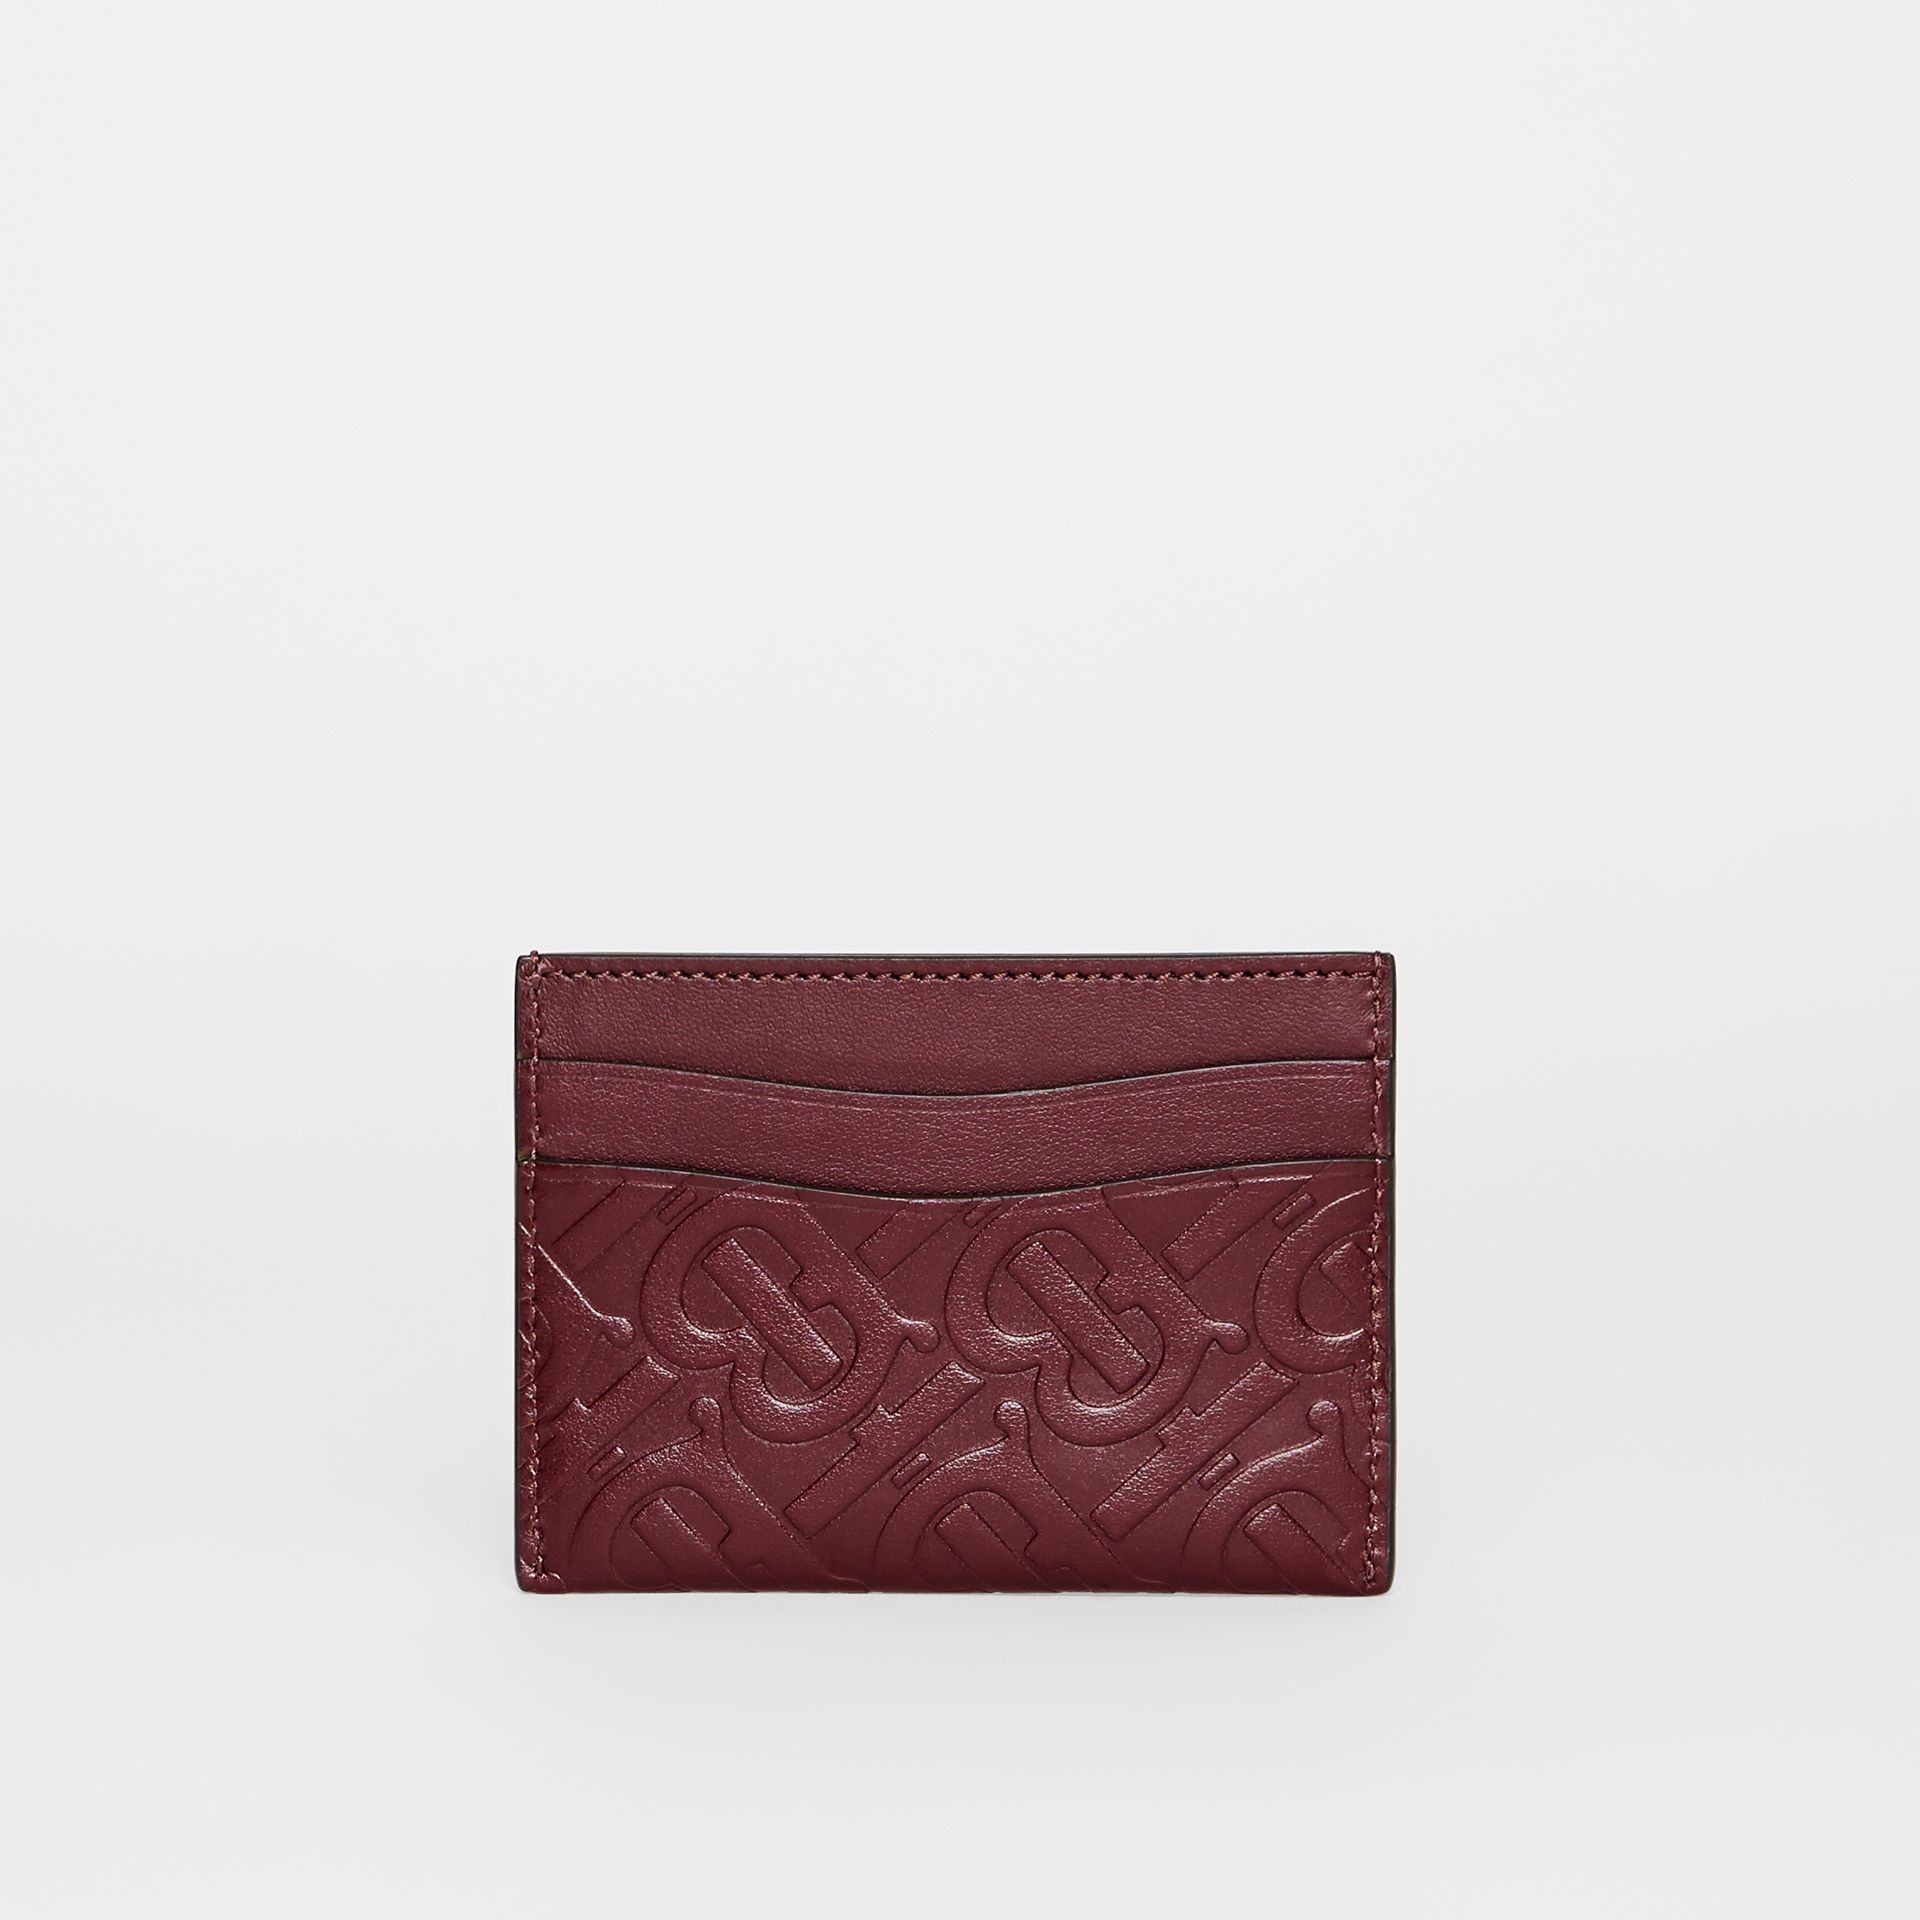 Porte-cartes en cuir Monogram (Oxblood) - Femme | Burberry Canada - photo de la galerie 4